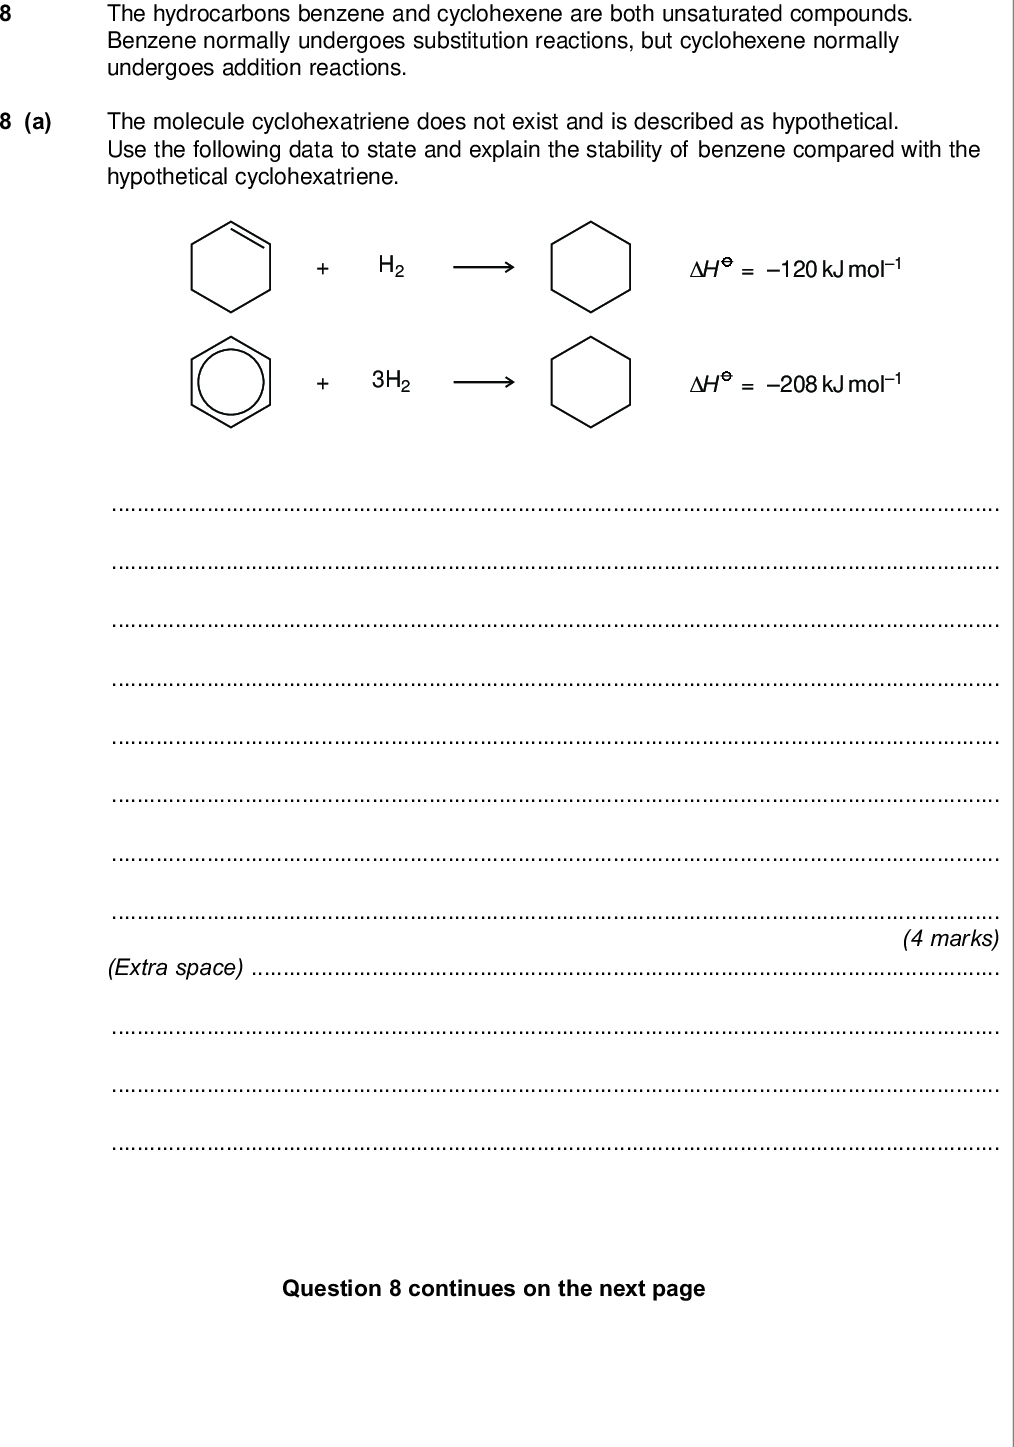 do not write outside the box the hydrocarbons benzene and cyclohexene are both unsaturated compounds benzene normally undergoes substitution reactions but cyclohexene normally undergoes addition reactions a the molecule cyclohexatriene does not exist and is described as hypothetical use the following data to state and explain the stability of benzene compared with the hypothetical cyclohexatriene h h h kj mol h kj mol marks extra space question continues on the next page turn over wmp jun chem do not write outside the box b benzene can be converted into amine u by the two step synthesis shown below reaction no reaction nh the mechanism of reaction involves attack by an electrophile give the reagents used to produce the electrophile needed in reaction write an equation showing the formation of this electrophile outline a mechanism for the reaction of this electrophile with benzene marks extra space wmp jun chem c cyclohexene can be converted into amine w by the two step synthesis shown below do not write outside the box reaction compound reaction nh suggest an identity for compound v for reaction give the reagent used and name the mechanism for reaction give the reagent and condition used and name the mechanism equations and mechanisms with curly arrows are not required marks extra space question continues on the next page turn over wmp jun chem d explain why amine u is a weaker base than amine w do not write outside the box marks extra space end of questions acknowledgement of copyright holders and publishers question extracts from www ecpi org copyright aqa and its licensors all rights reserved wmp jun chem